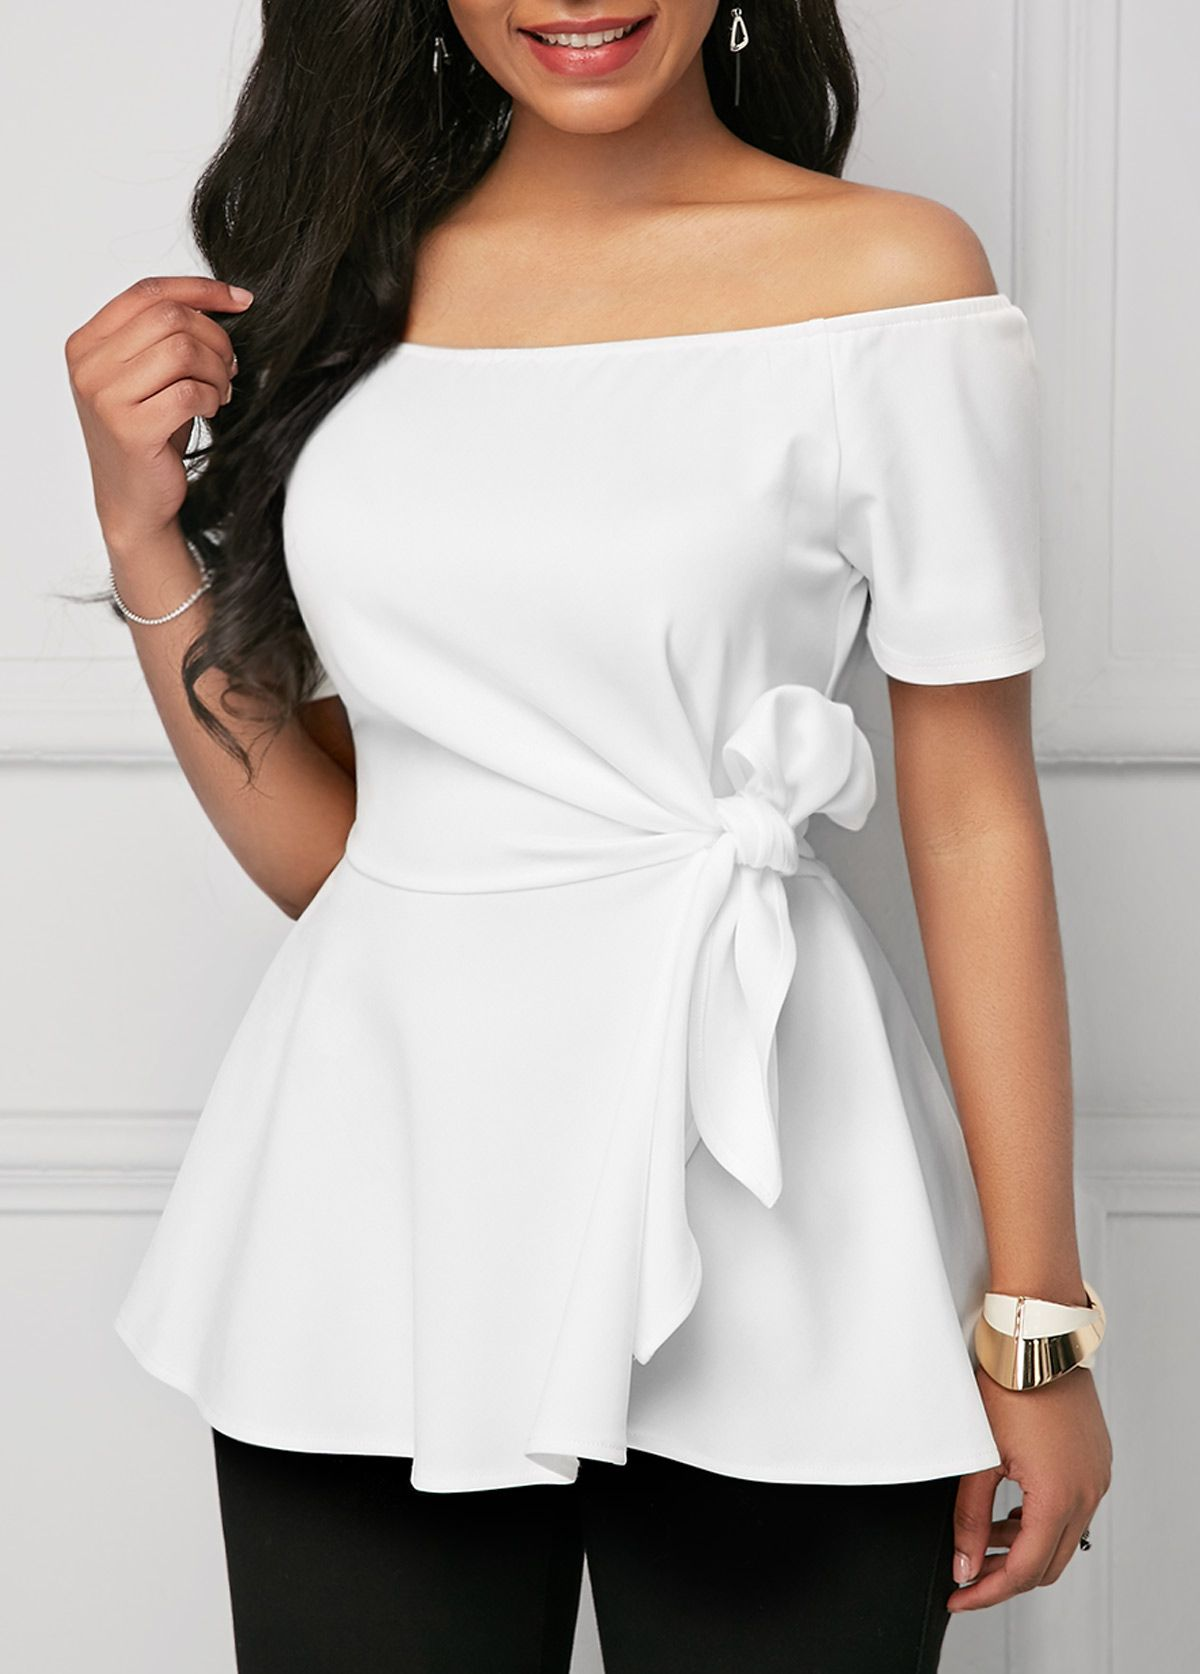 Belted off the shoulder white short sleeve blouse in moda